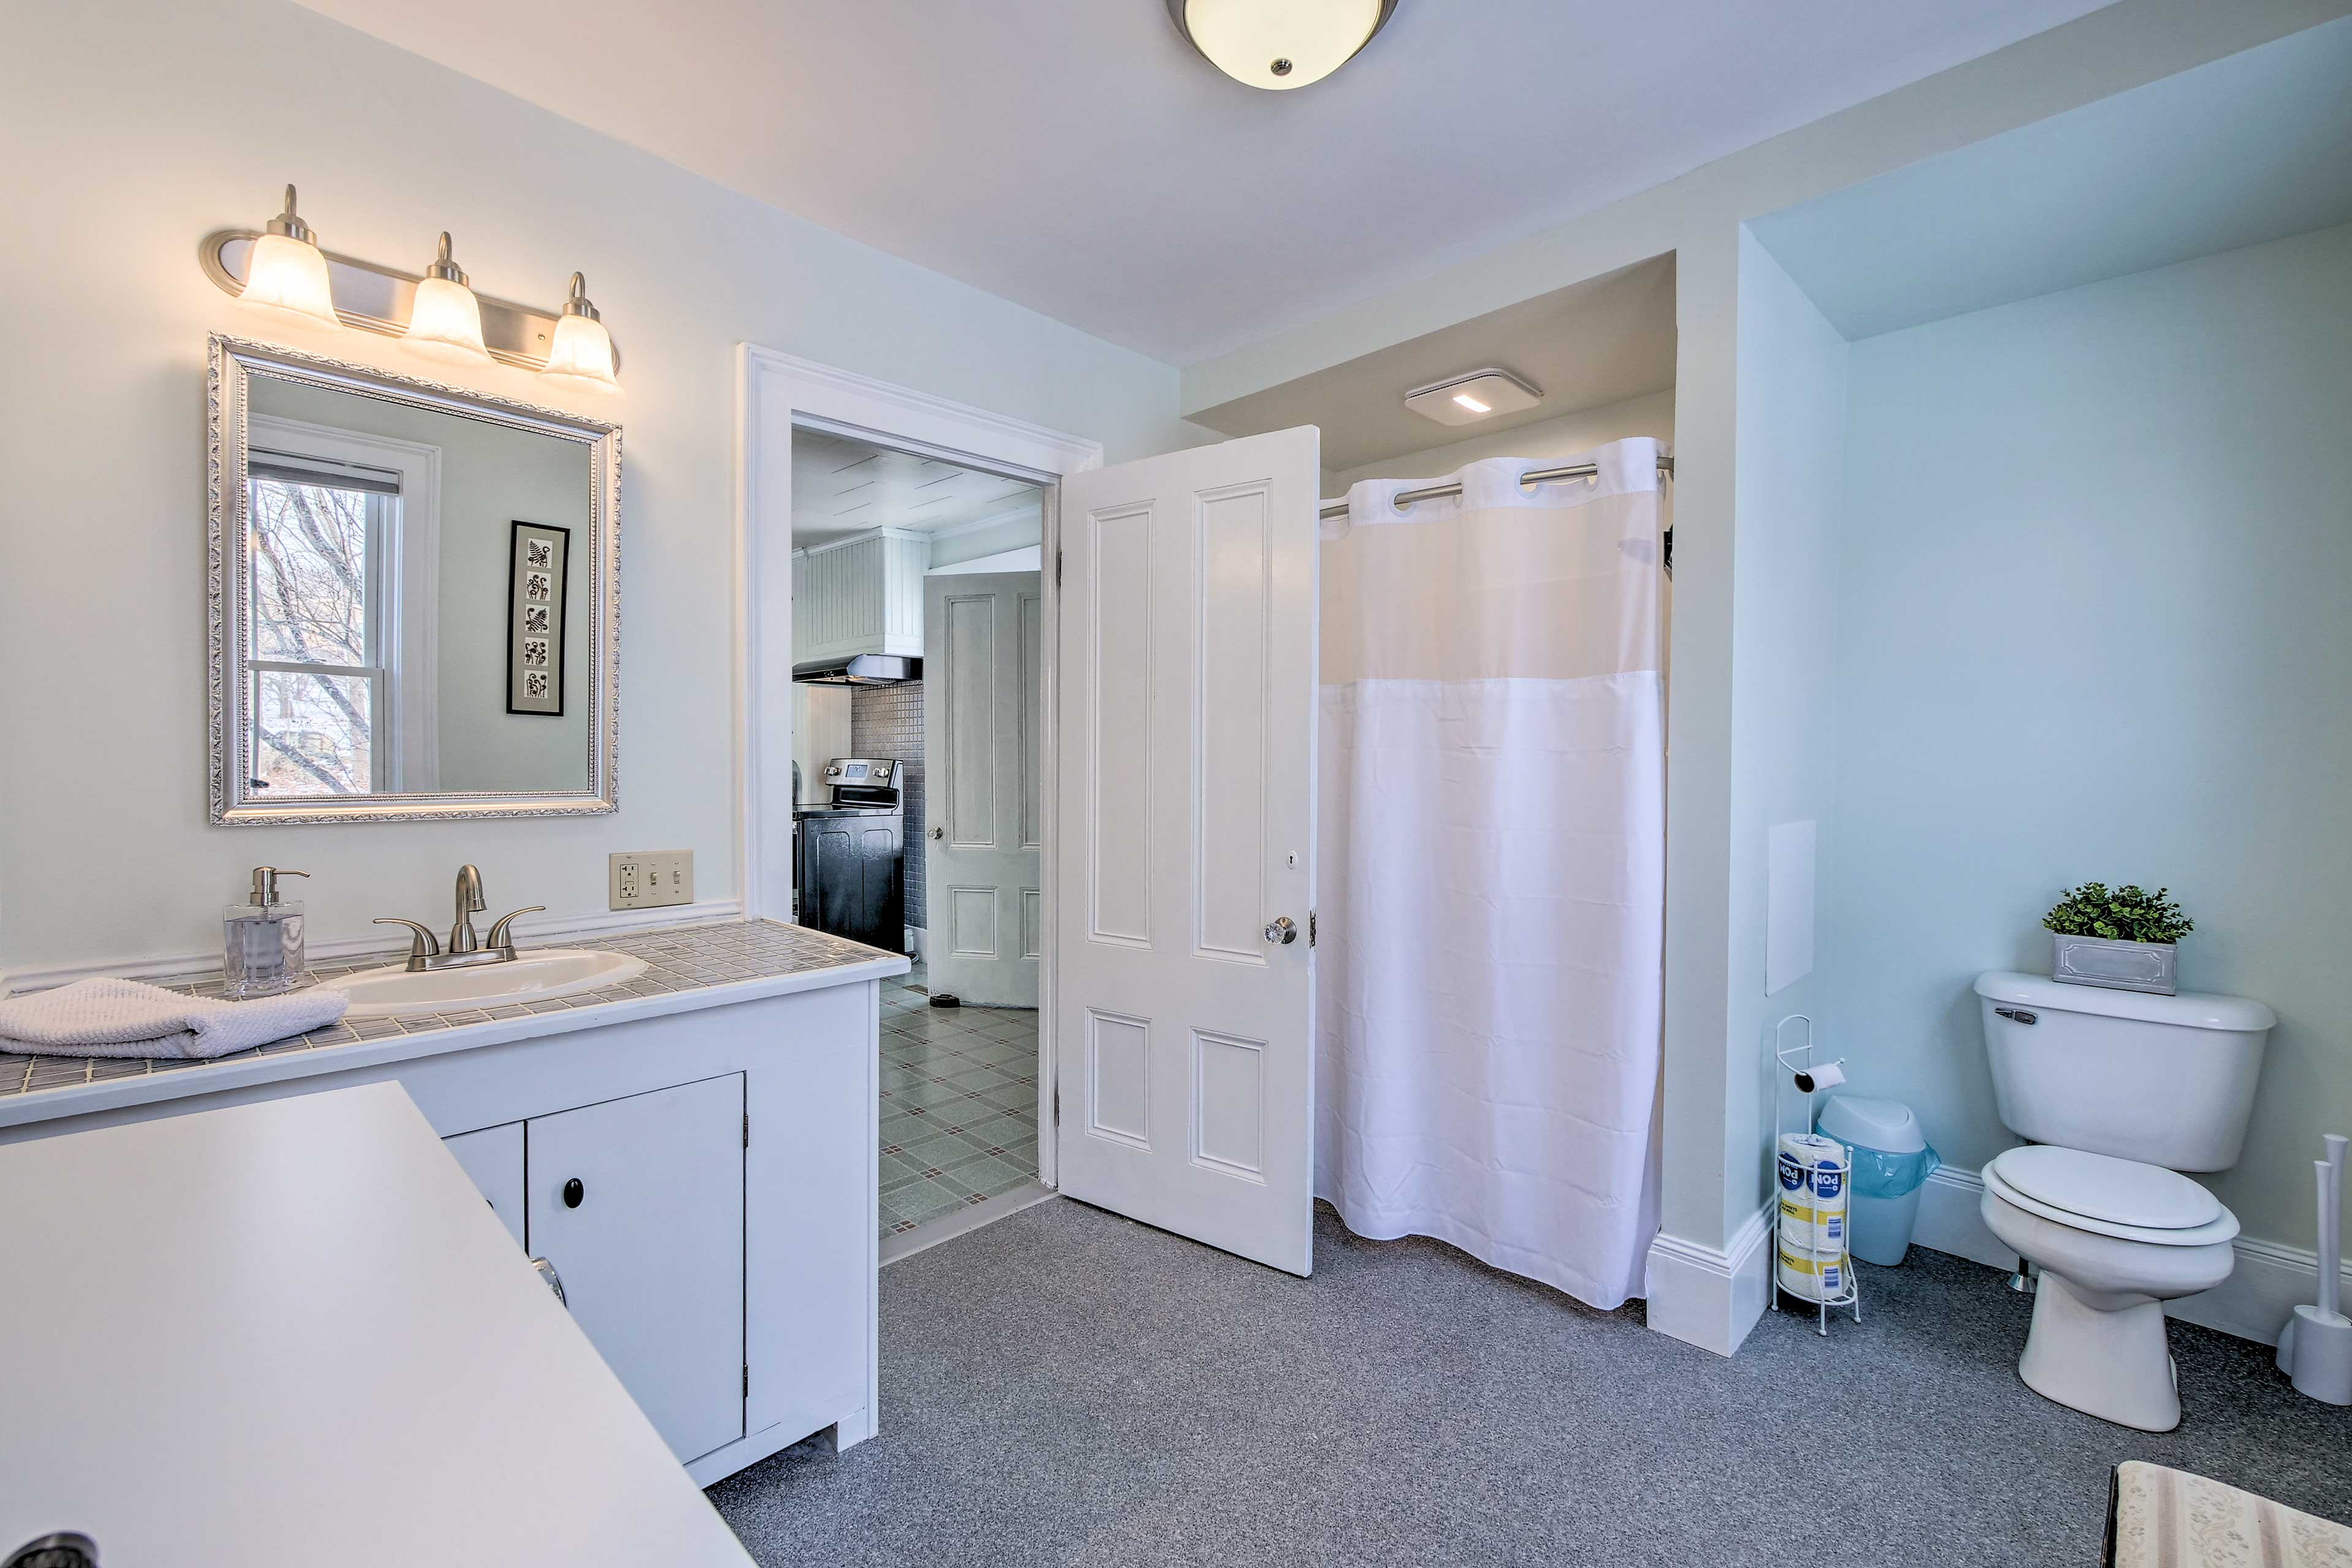 The main bathroom is located on the first floor.